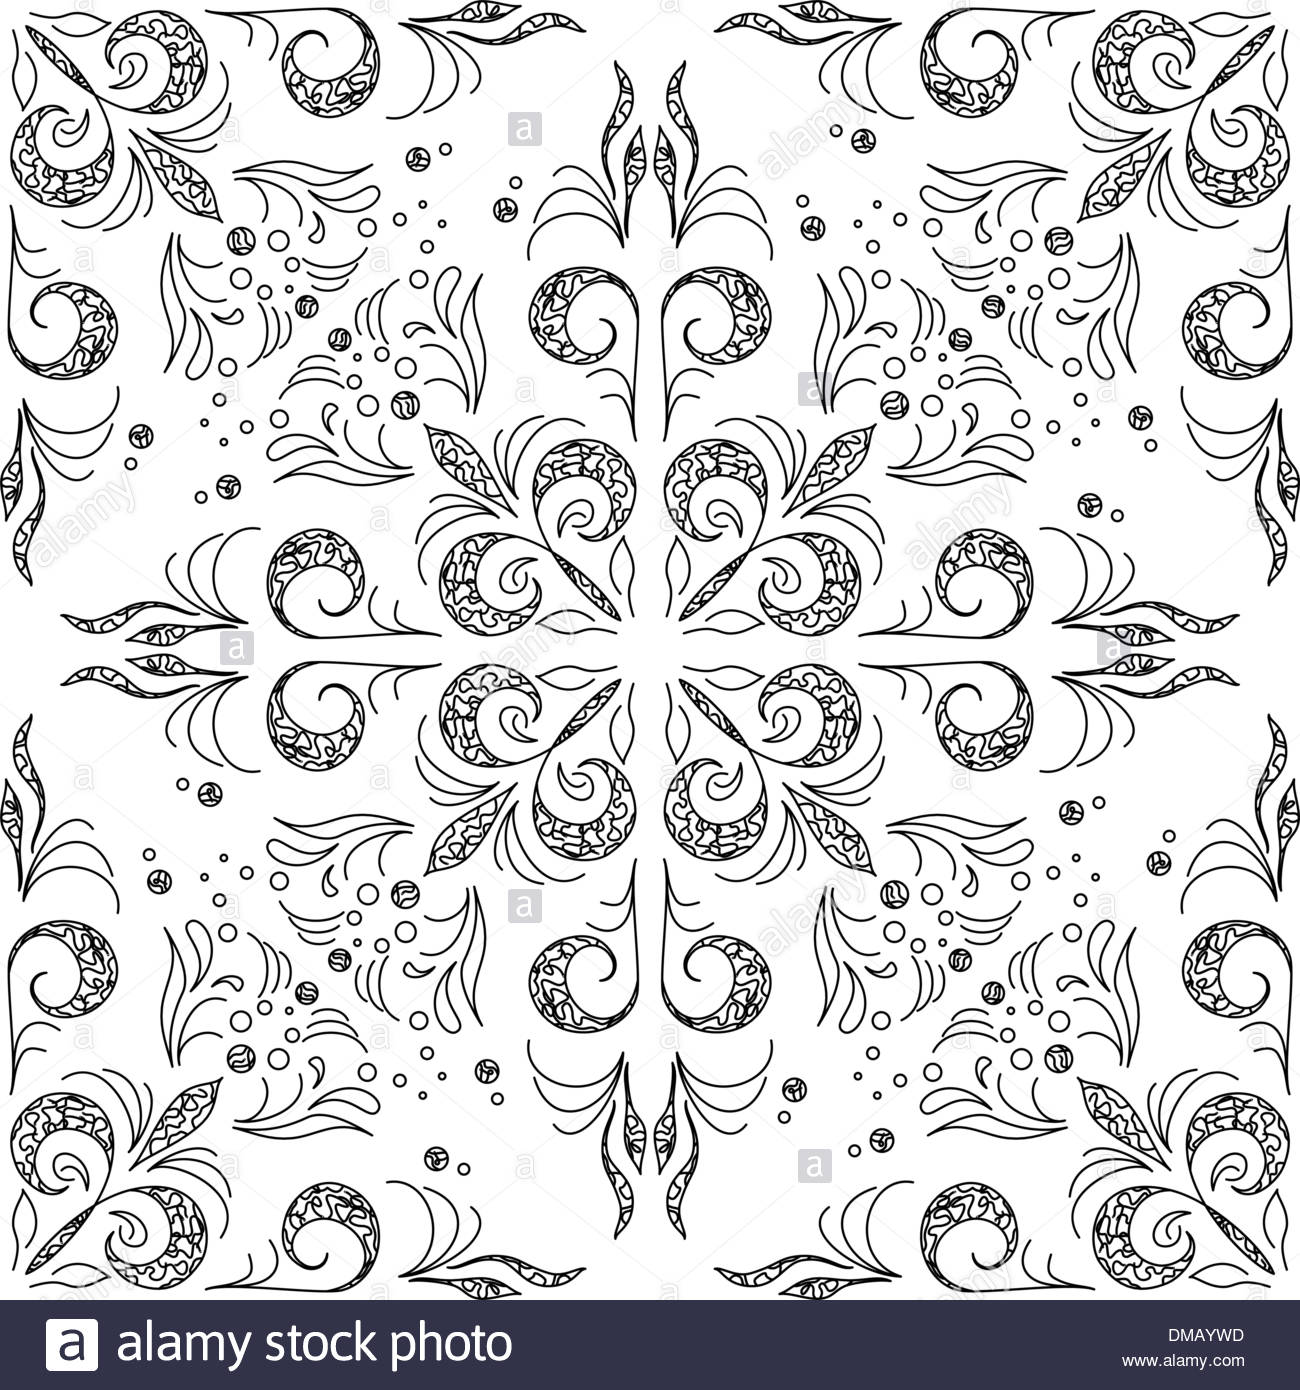 Abstract background outline Stock Vector Art Illustration 1300x1390